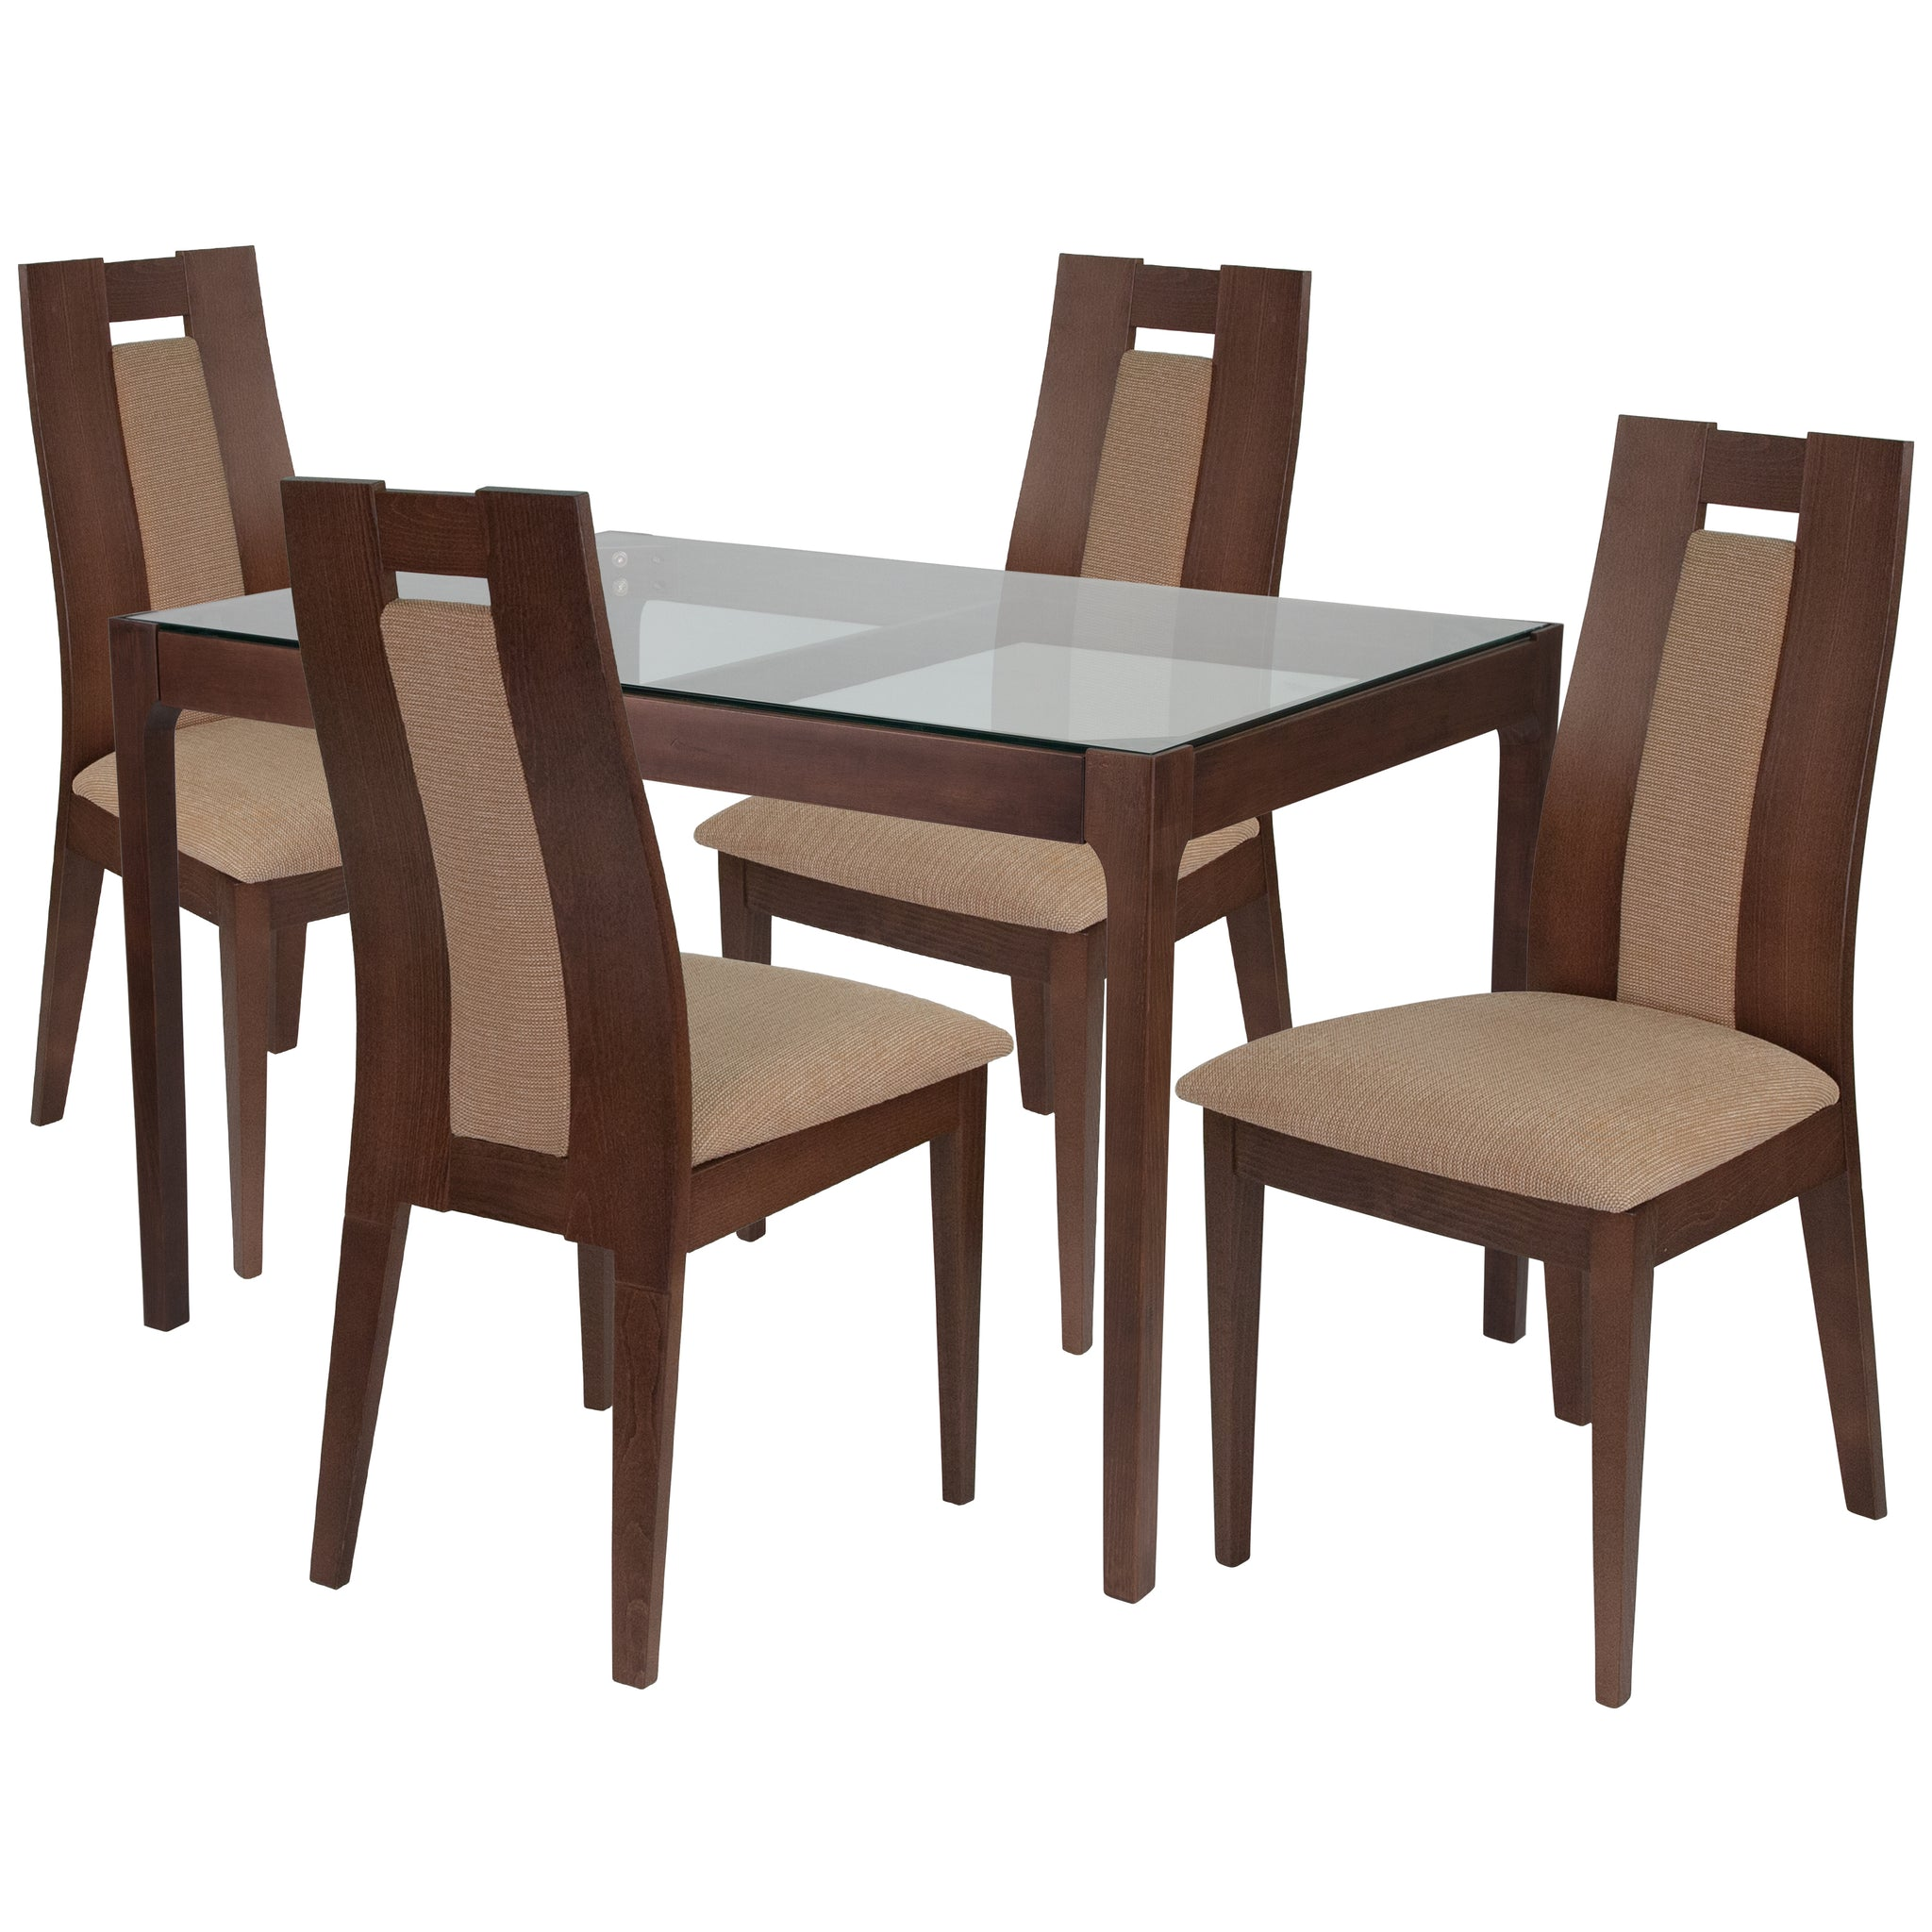 Bishop 5 Piece Walnut Wood Dining Table Set with Glass Top and Curved Slat Wood Dining Chairs - Padded Seats